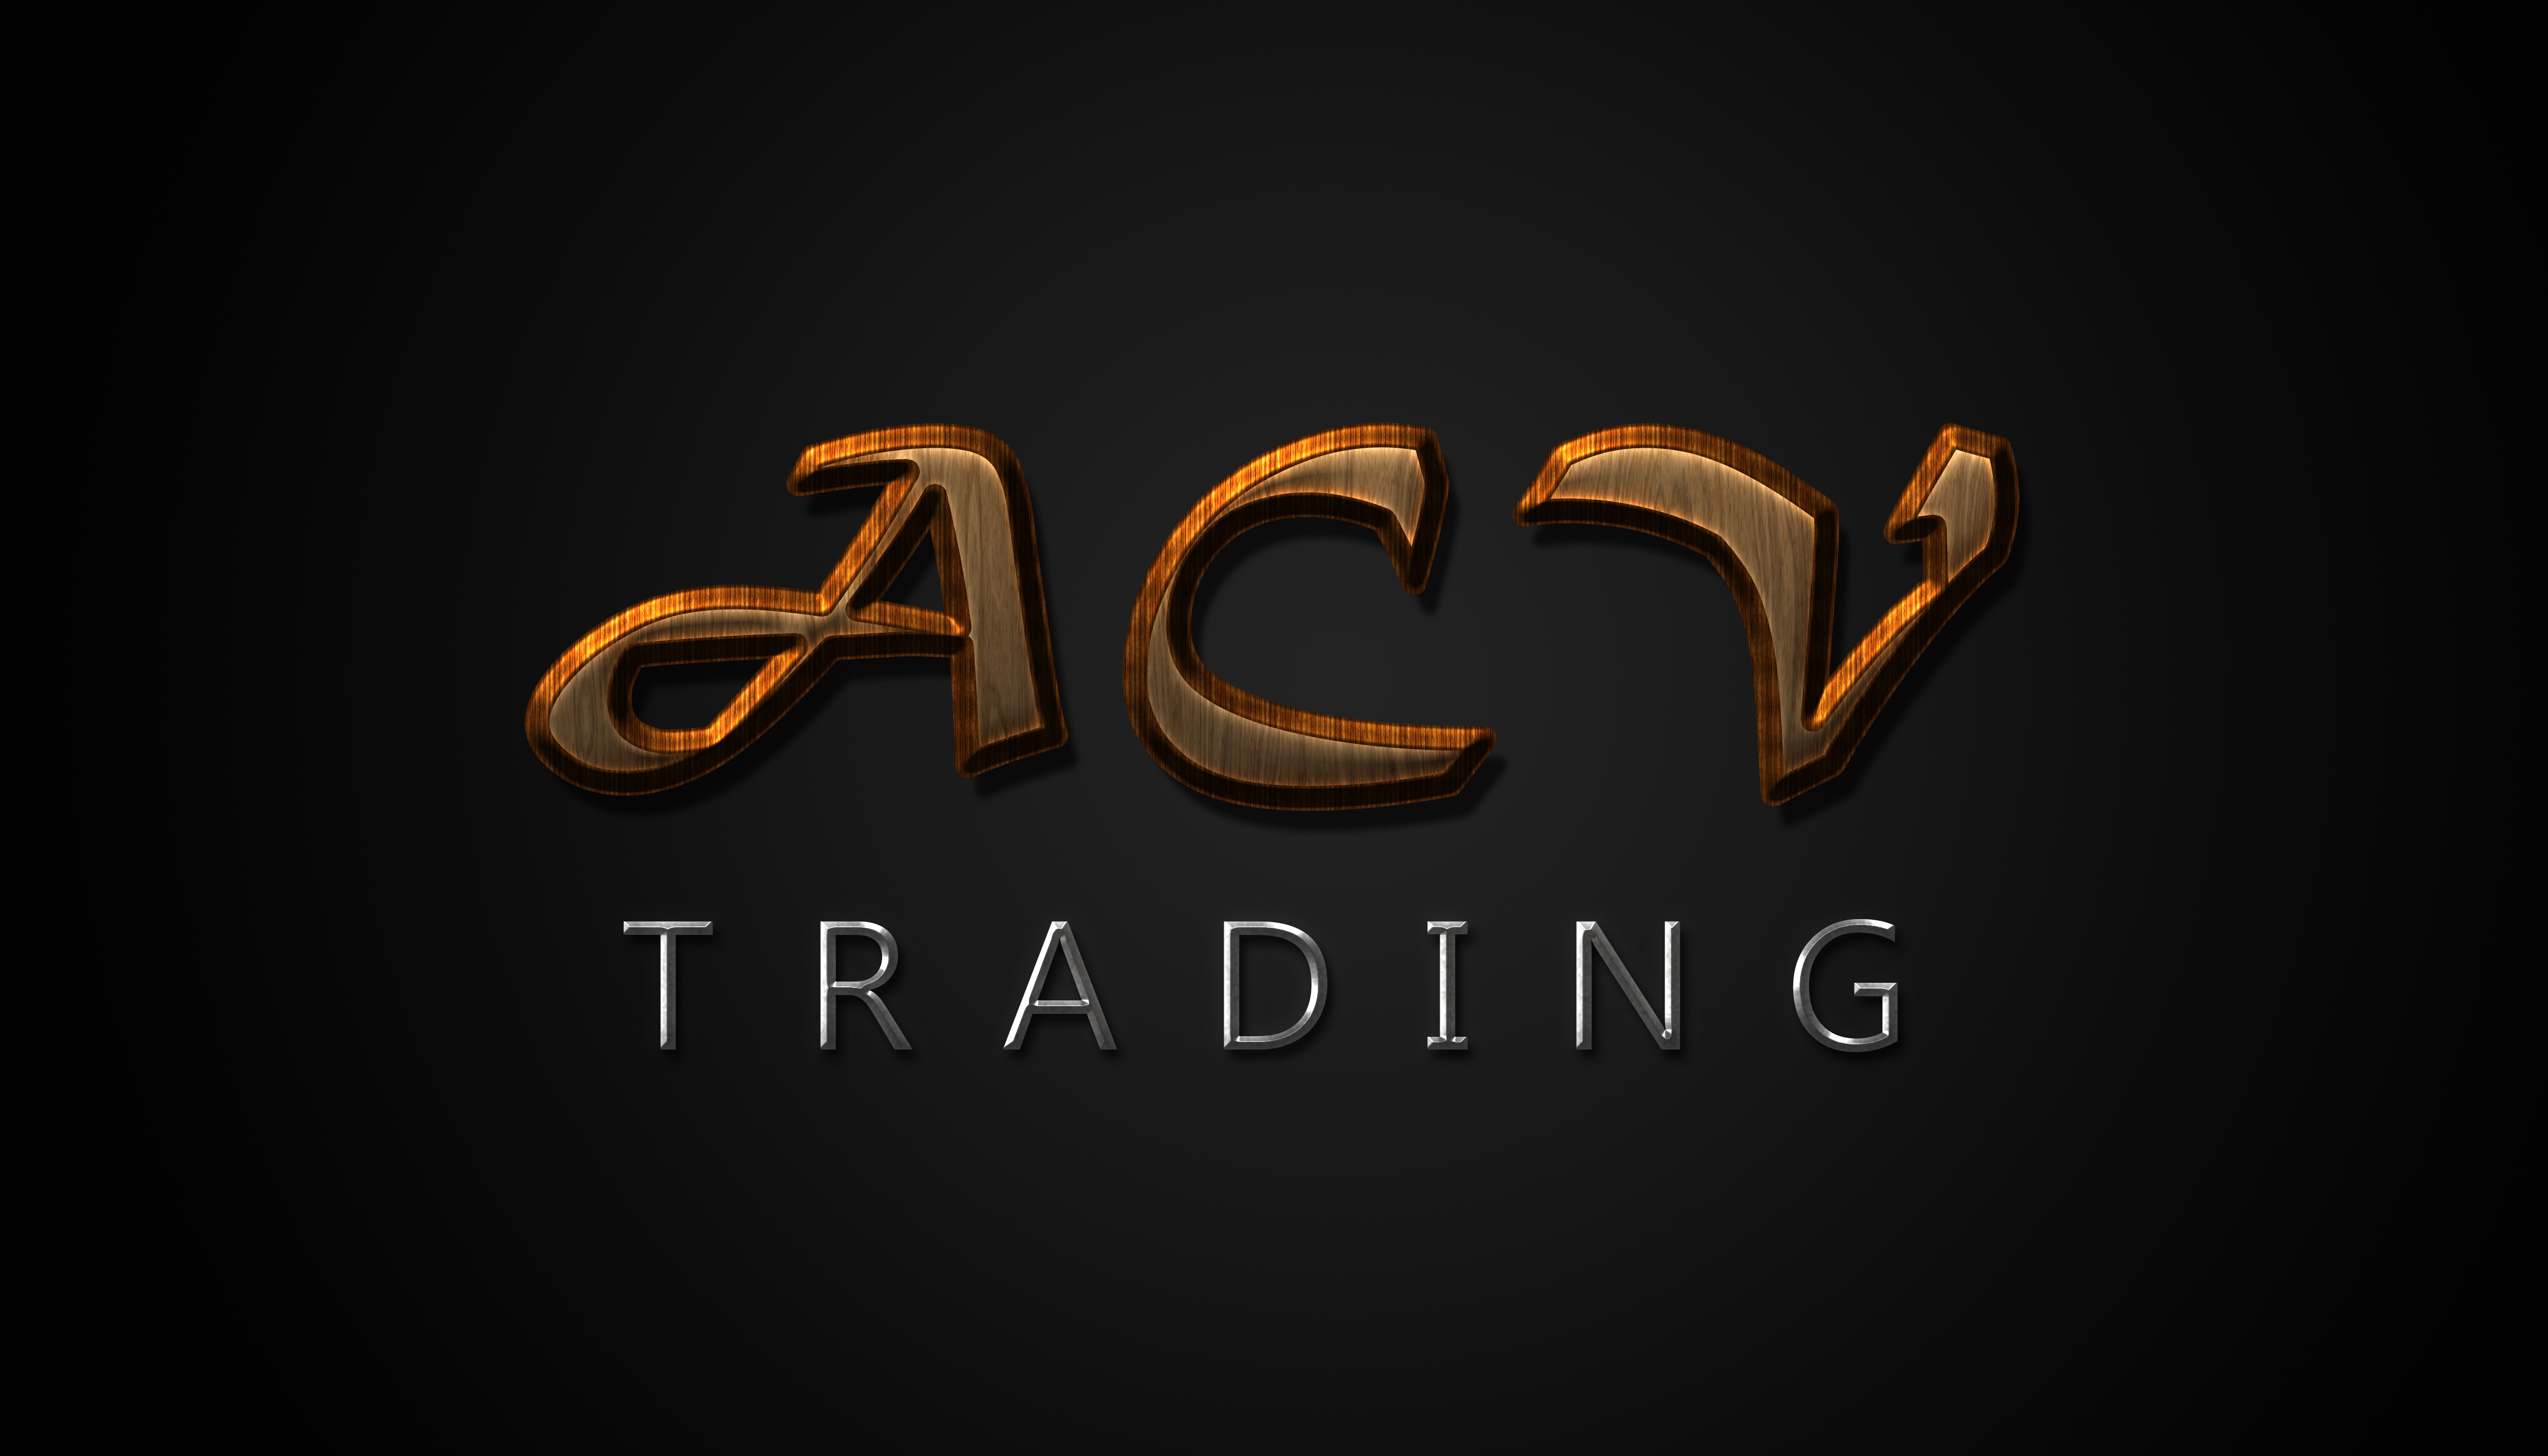 Logo Design by Jomar roy Villalobos - Entry No. 83 in the Logo Design Contest Fun Logo Design for ACV Trading.